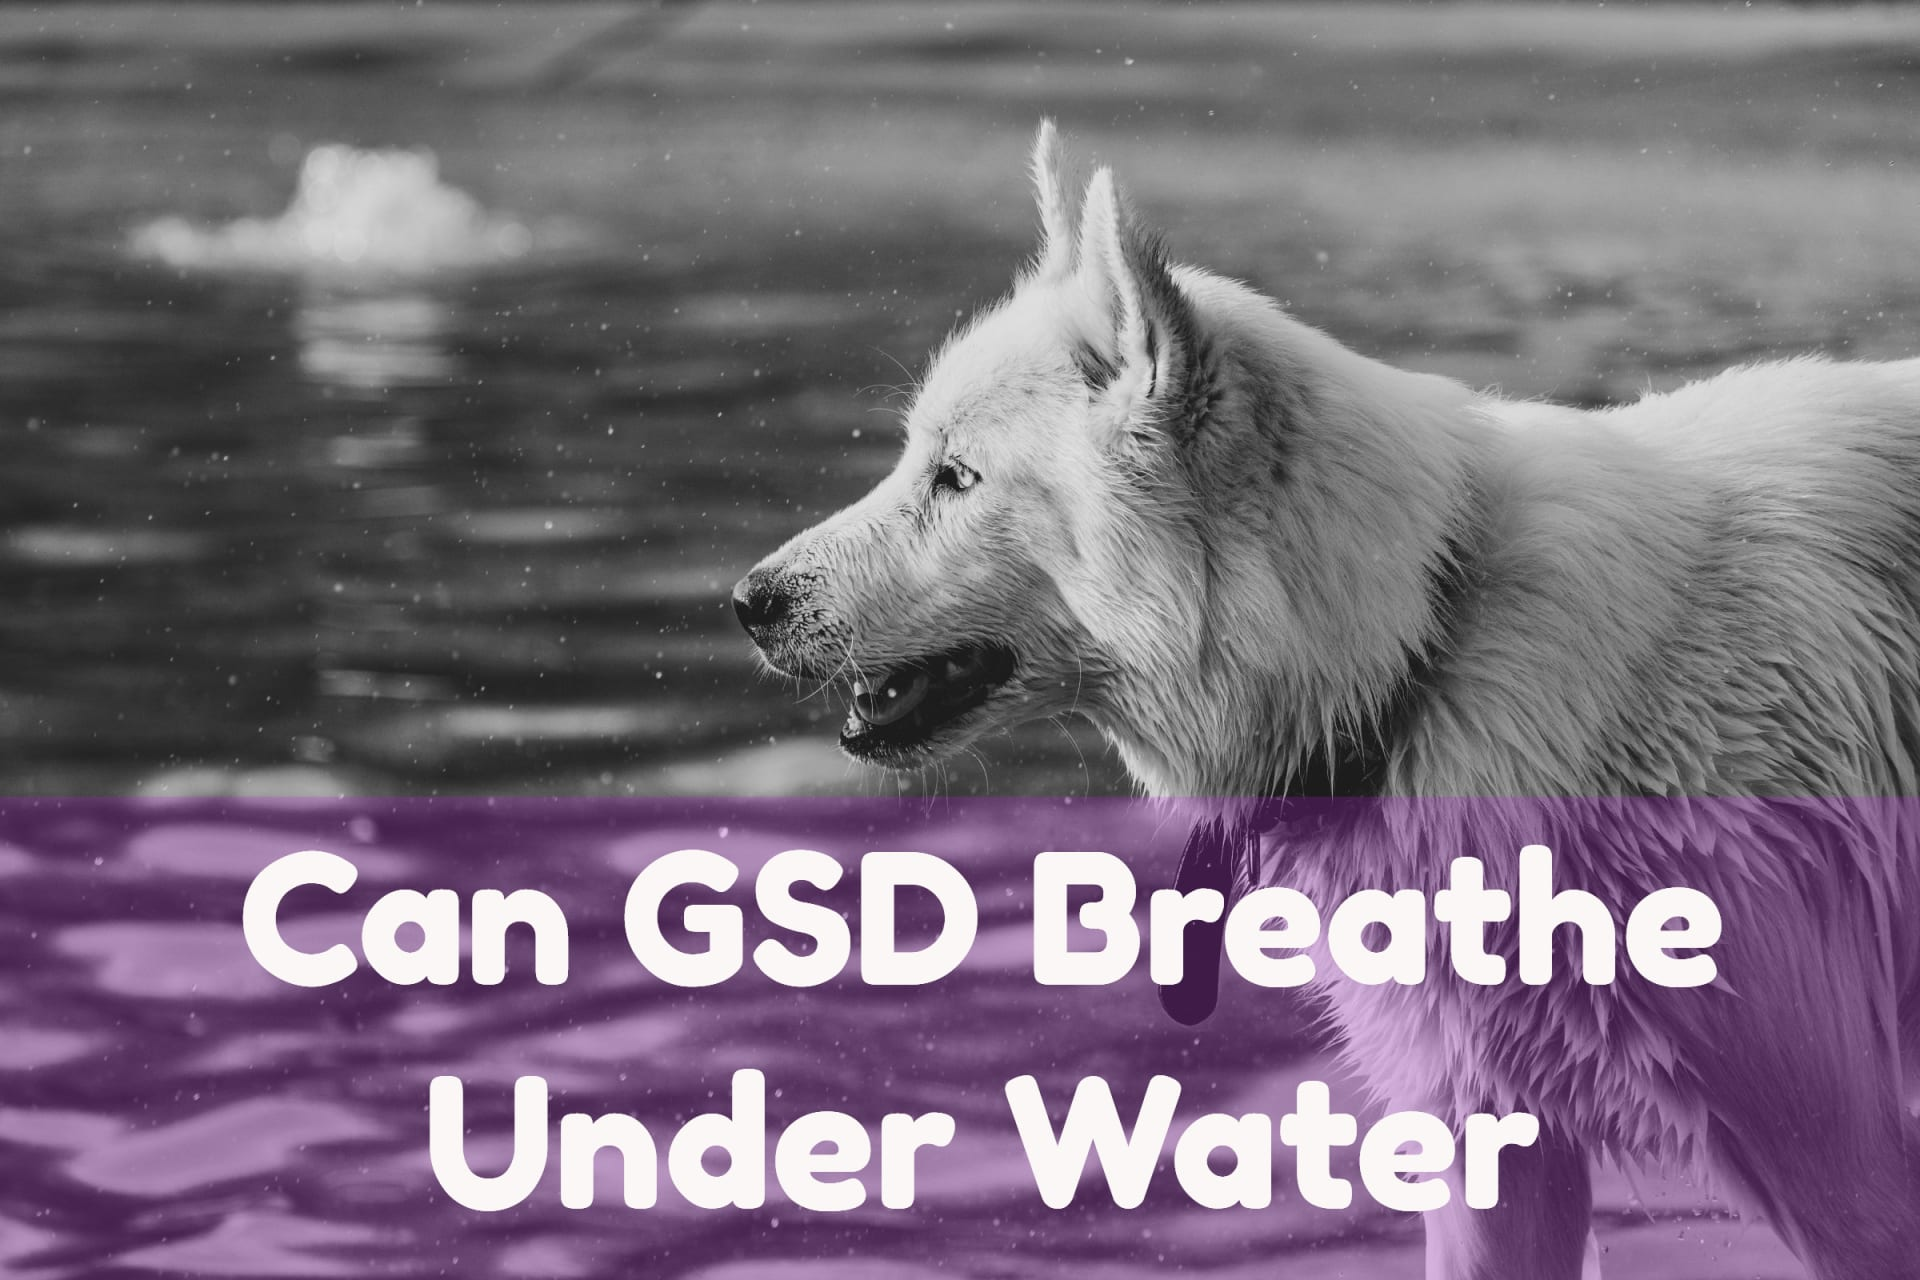 Can GSD breath under water